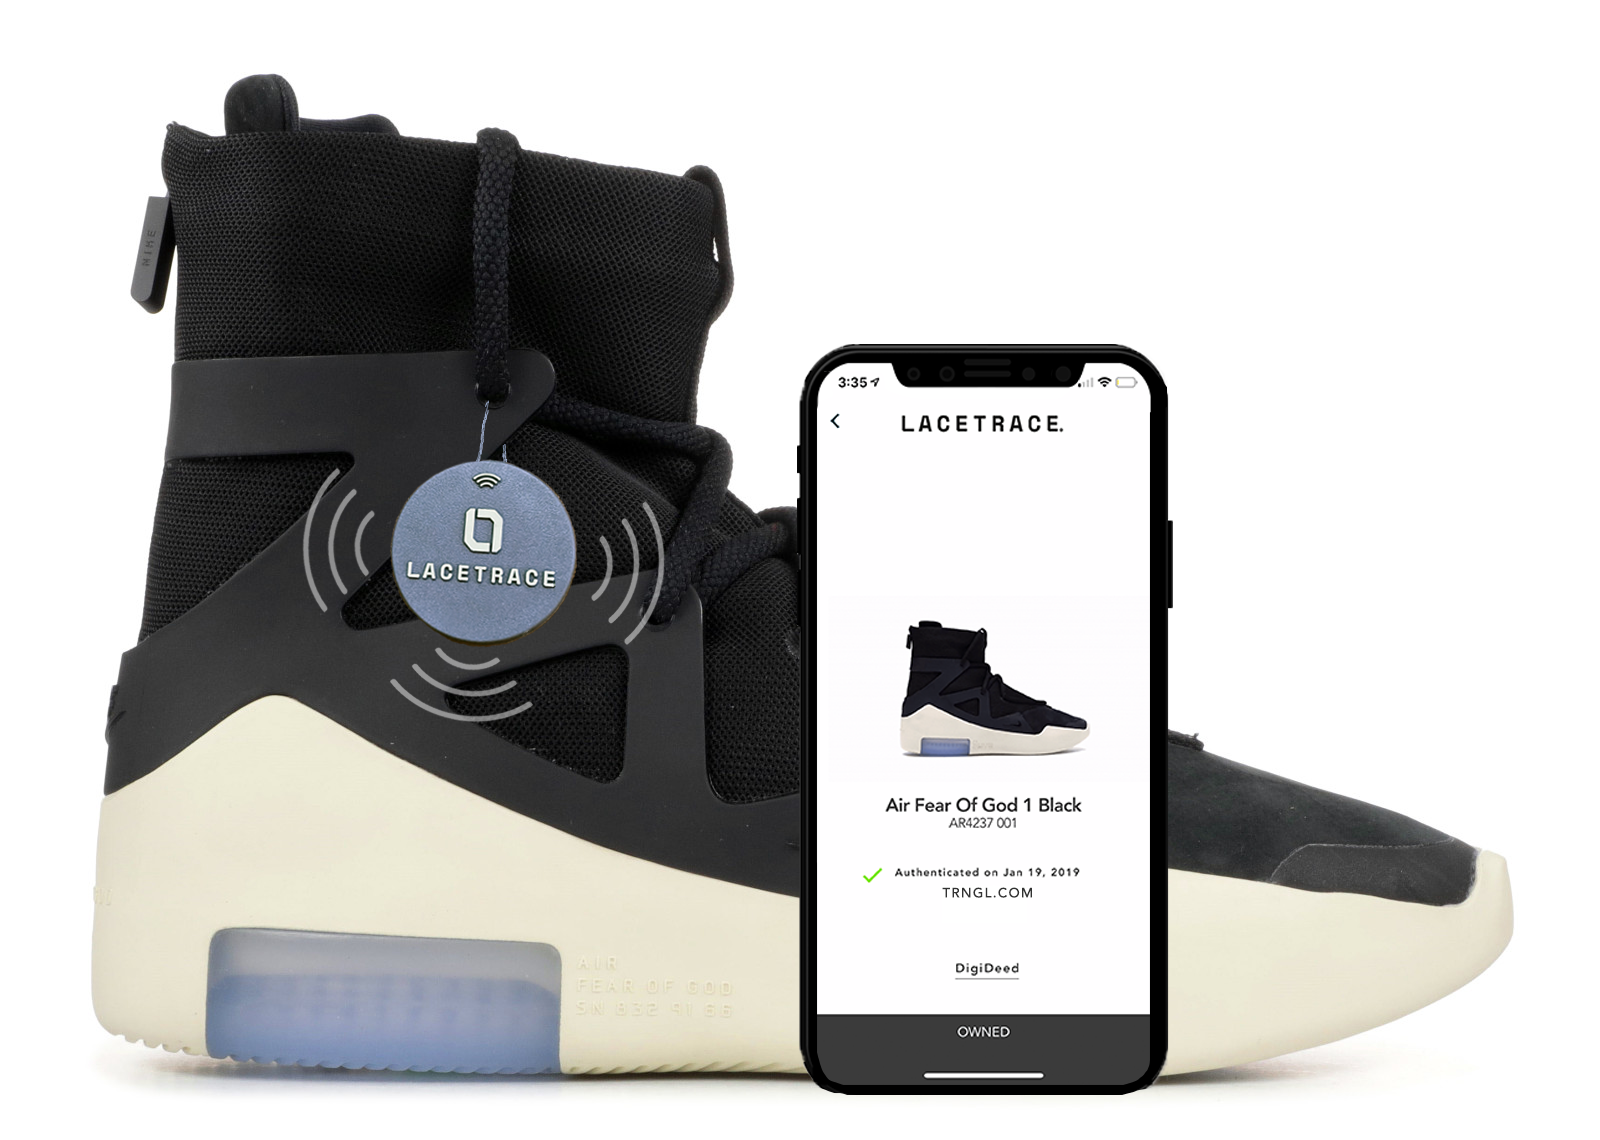 Claim, Trade, Transfer. - users can scan LaceTrace tags to claim ownership of sneakers that they purchase. A user can transfer ownership to anyone else on the LaceTrace network.